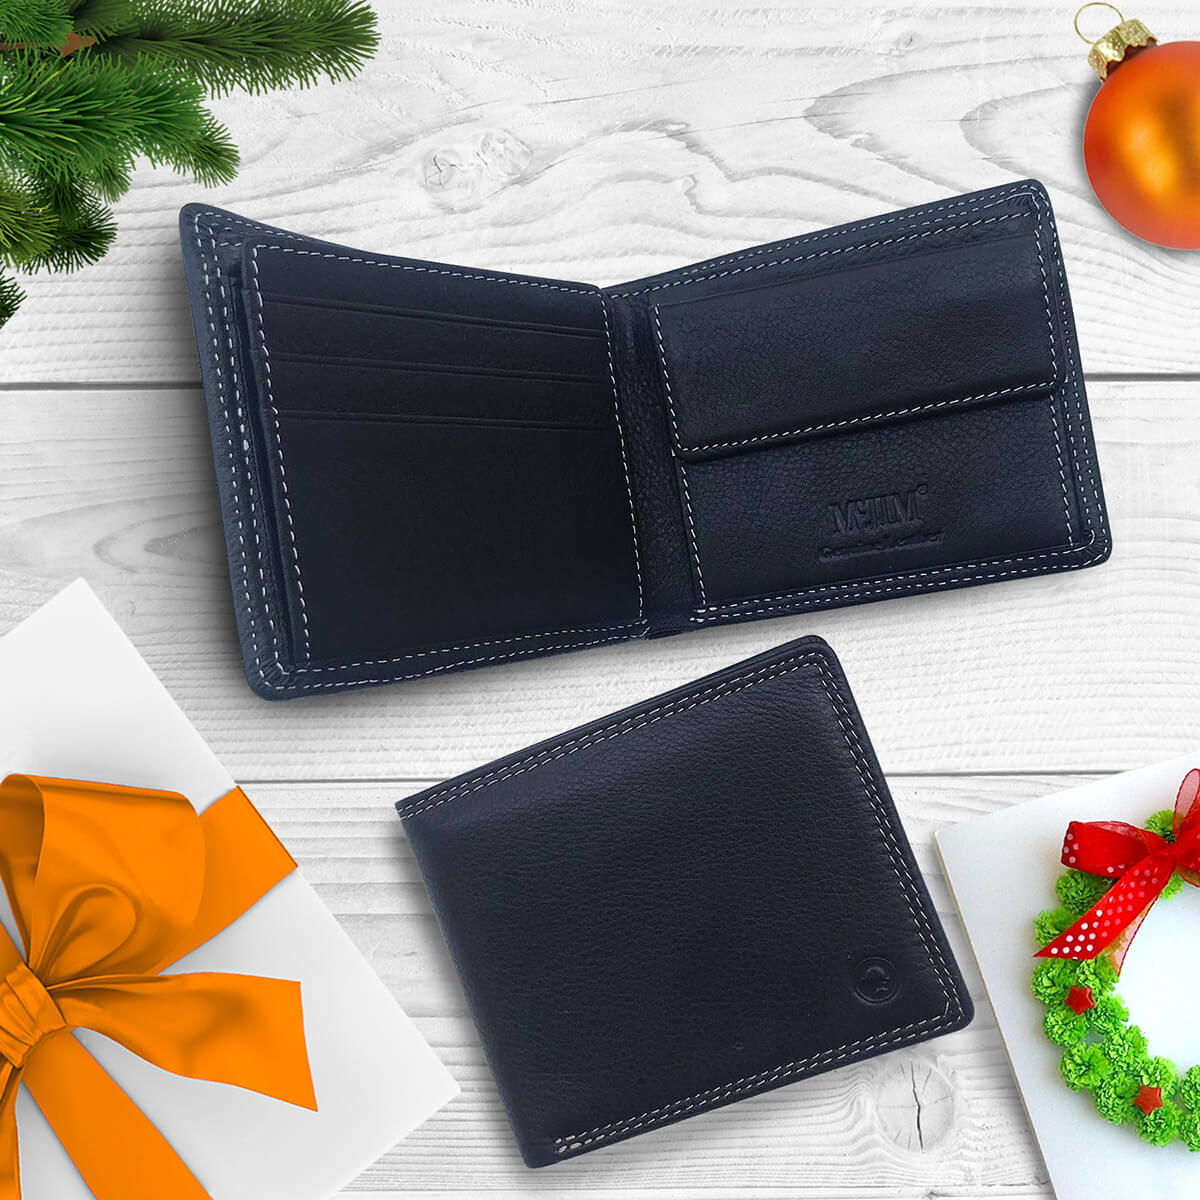 McJim Classic Leather Wallet